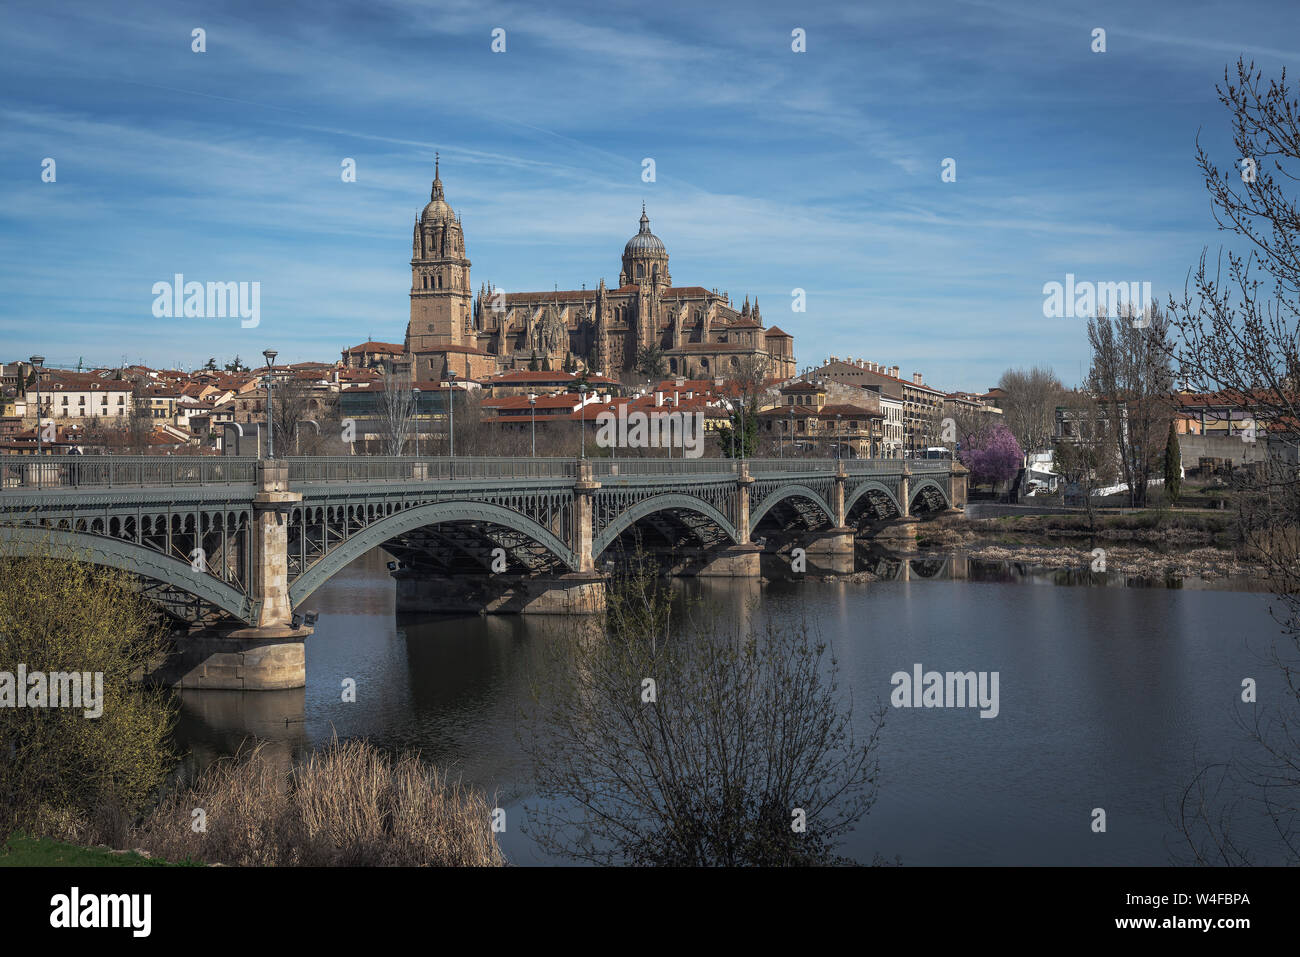 Salamanca Skyline view with Cathedral and Enrique Estevan Bridge from Tormes River - Salamanca, Castile and Leon, Spain Stock Photo